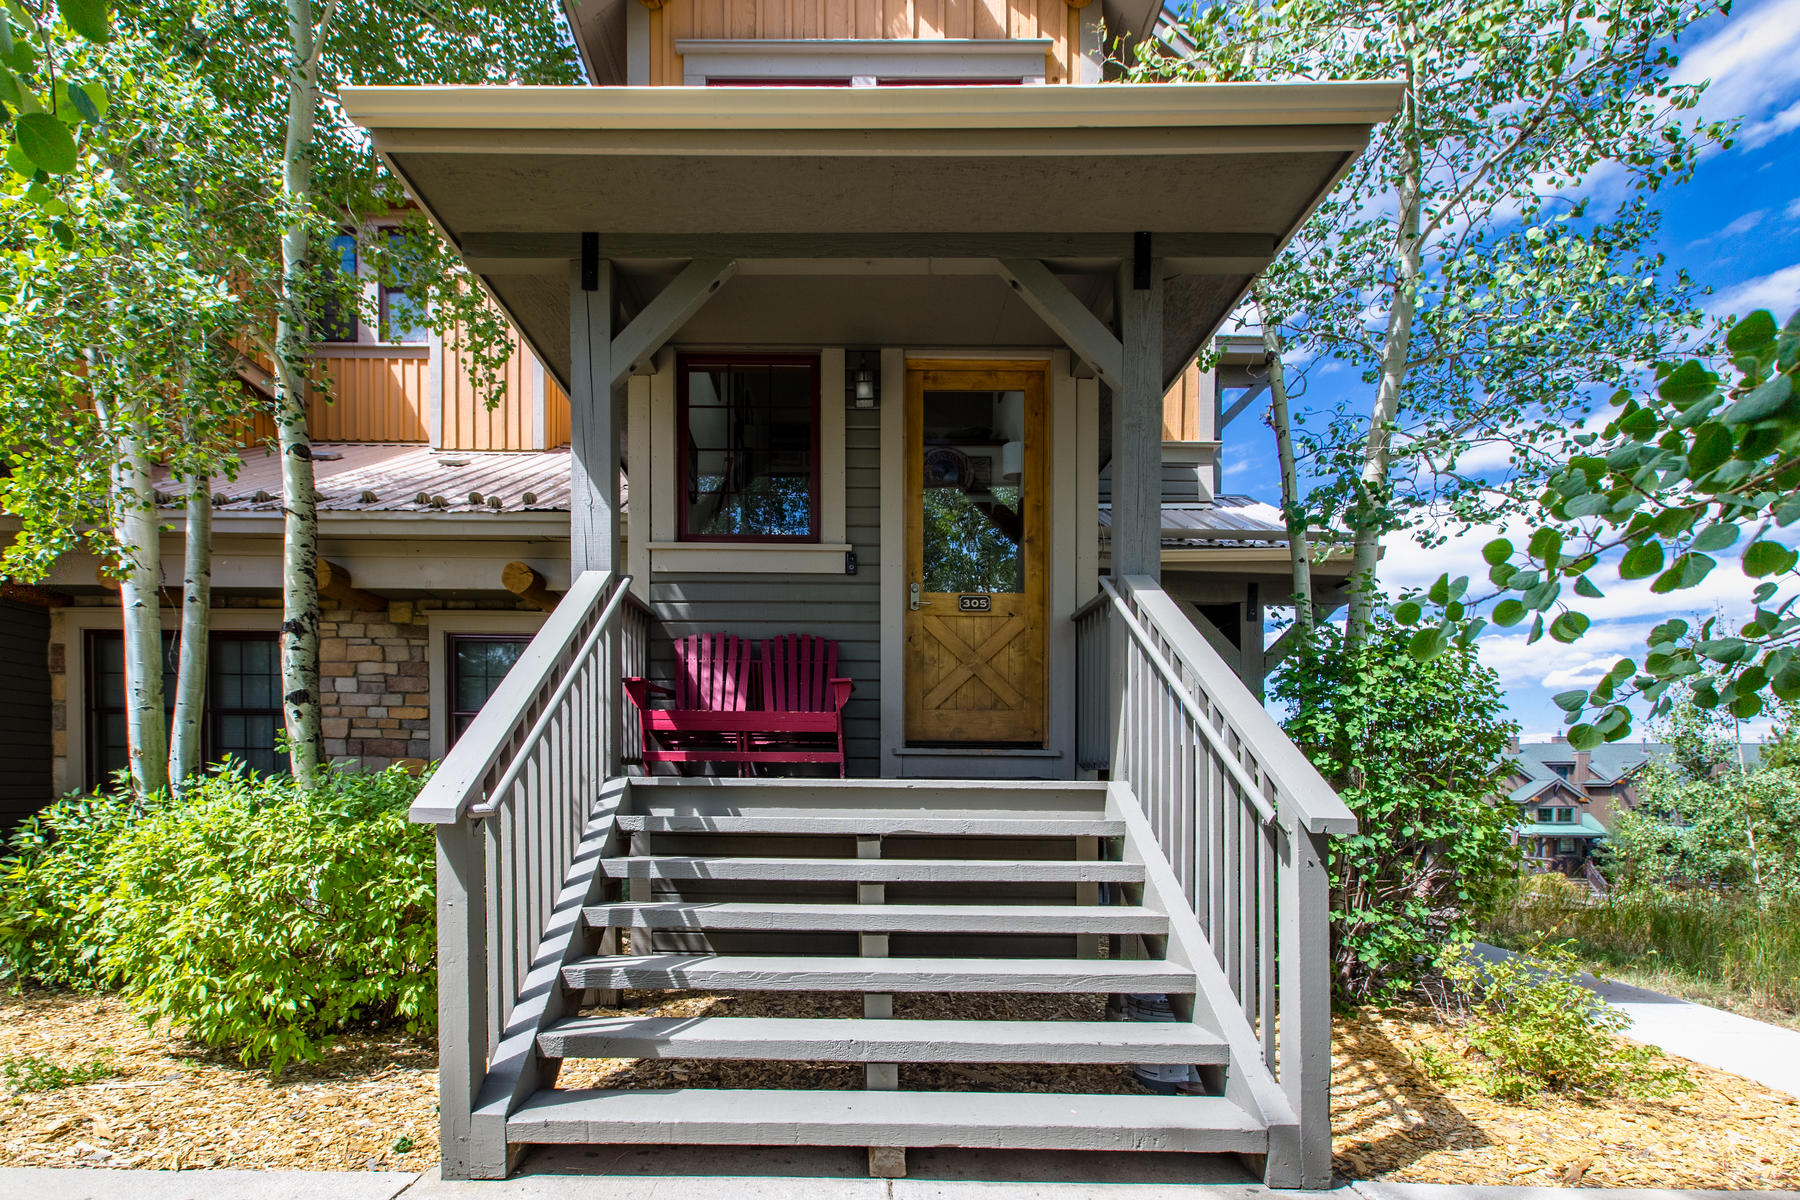 Condominiums for Sale at Amazing mountain getaway in Kicking Horse Lodges with Granby Ranch membership! 5305 N Star Trl #5-305, Bldg 5 Granby, Colorado 80446 United States